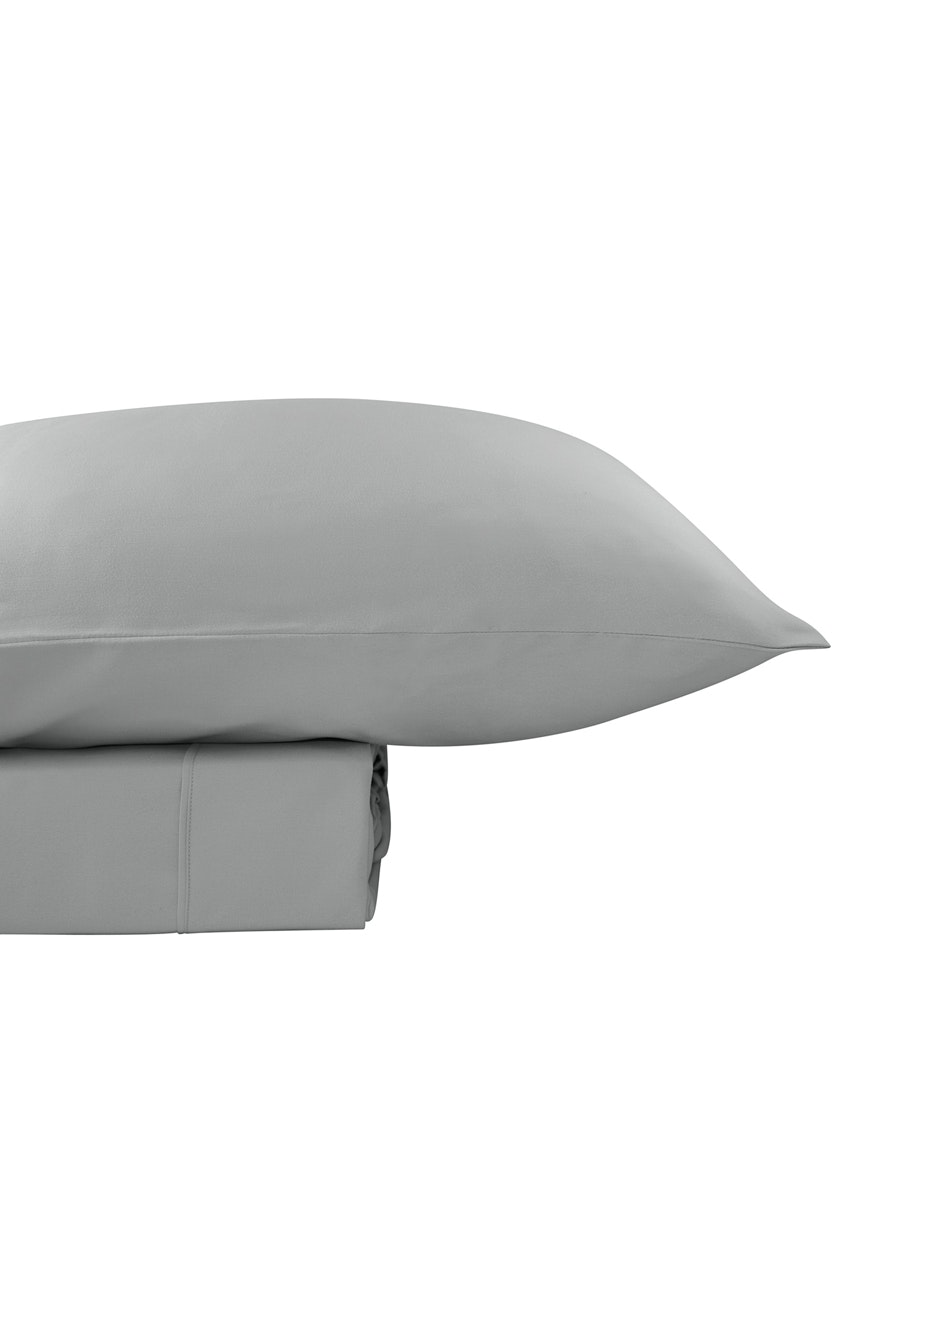 Thermal Flannel Sheet Sets - Glacier - Queen Bed